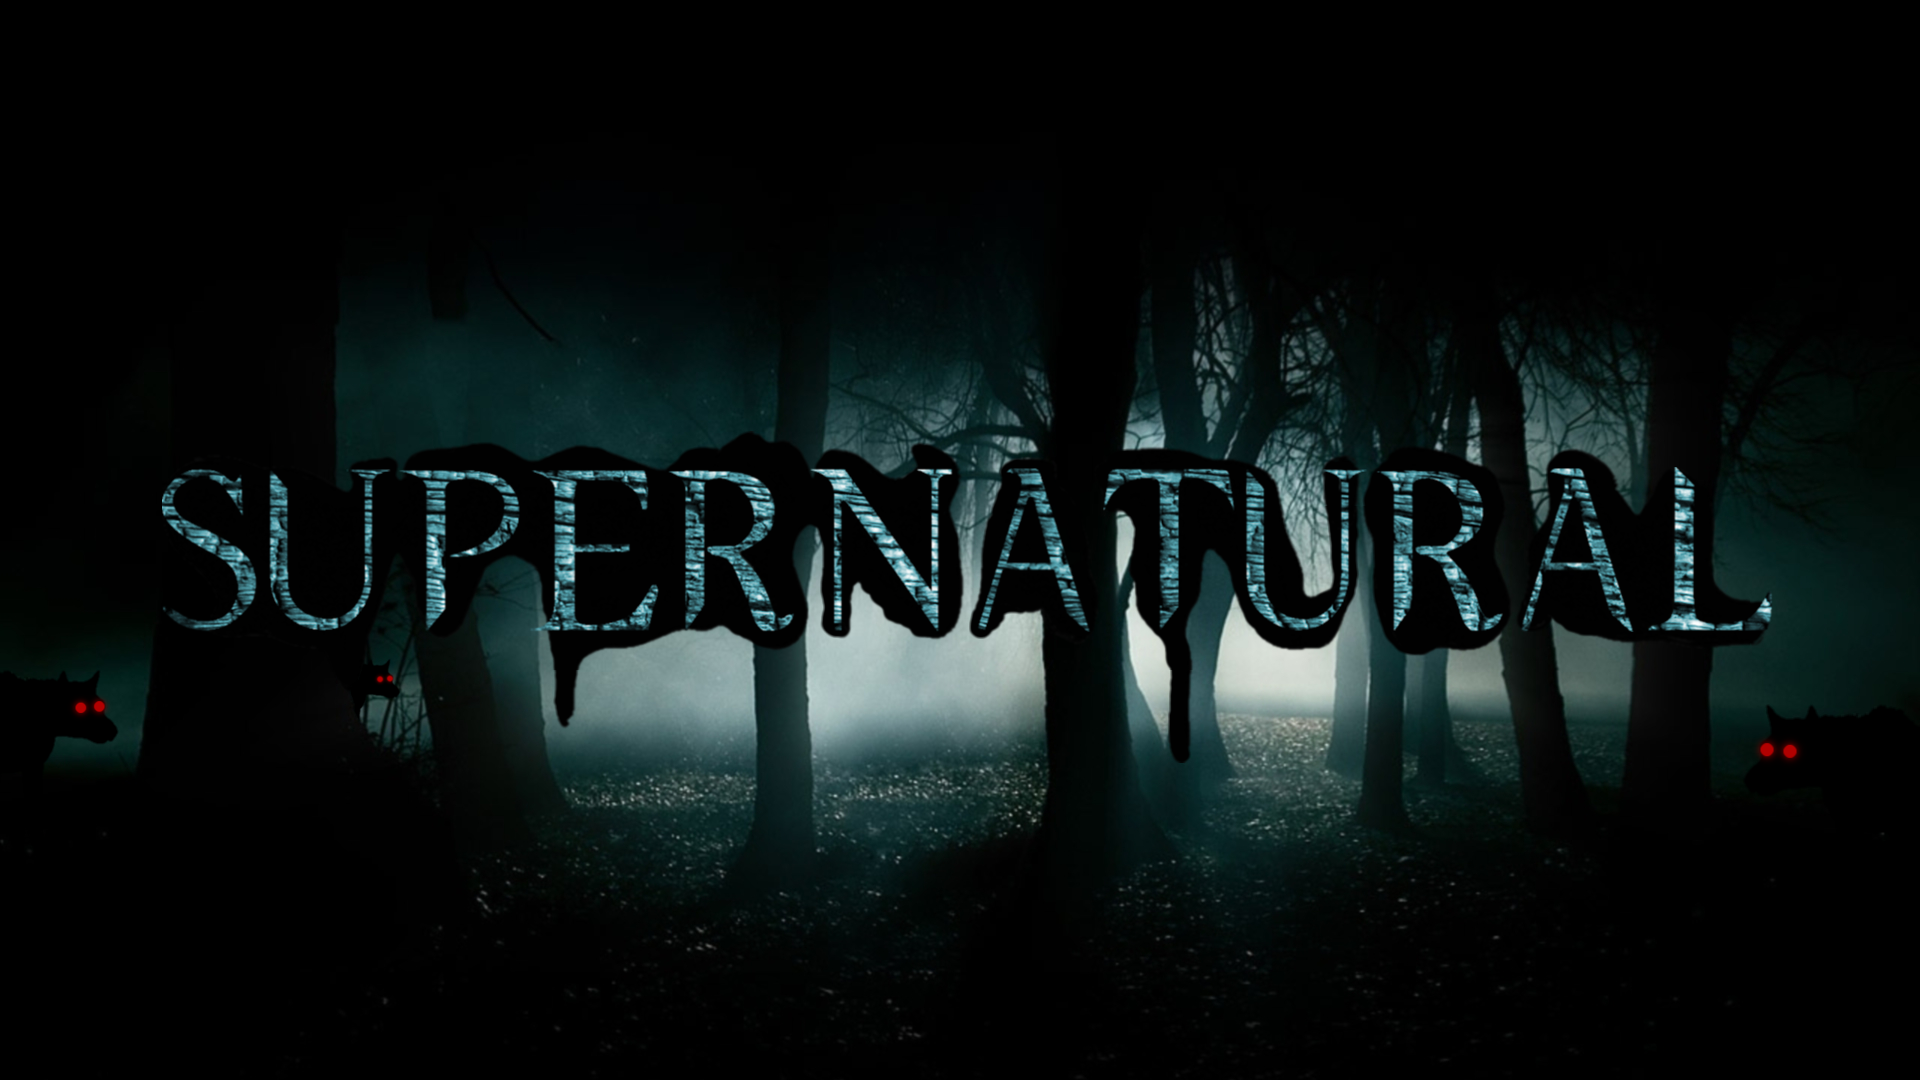 Cool Supernatural Wallpapers ID: ZUX4343